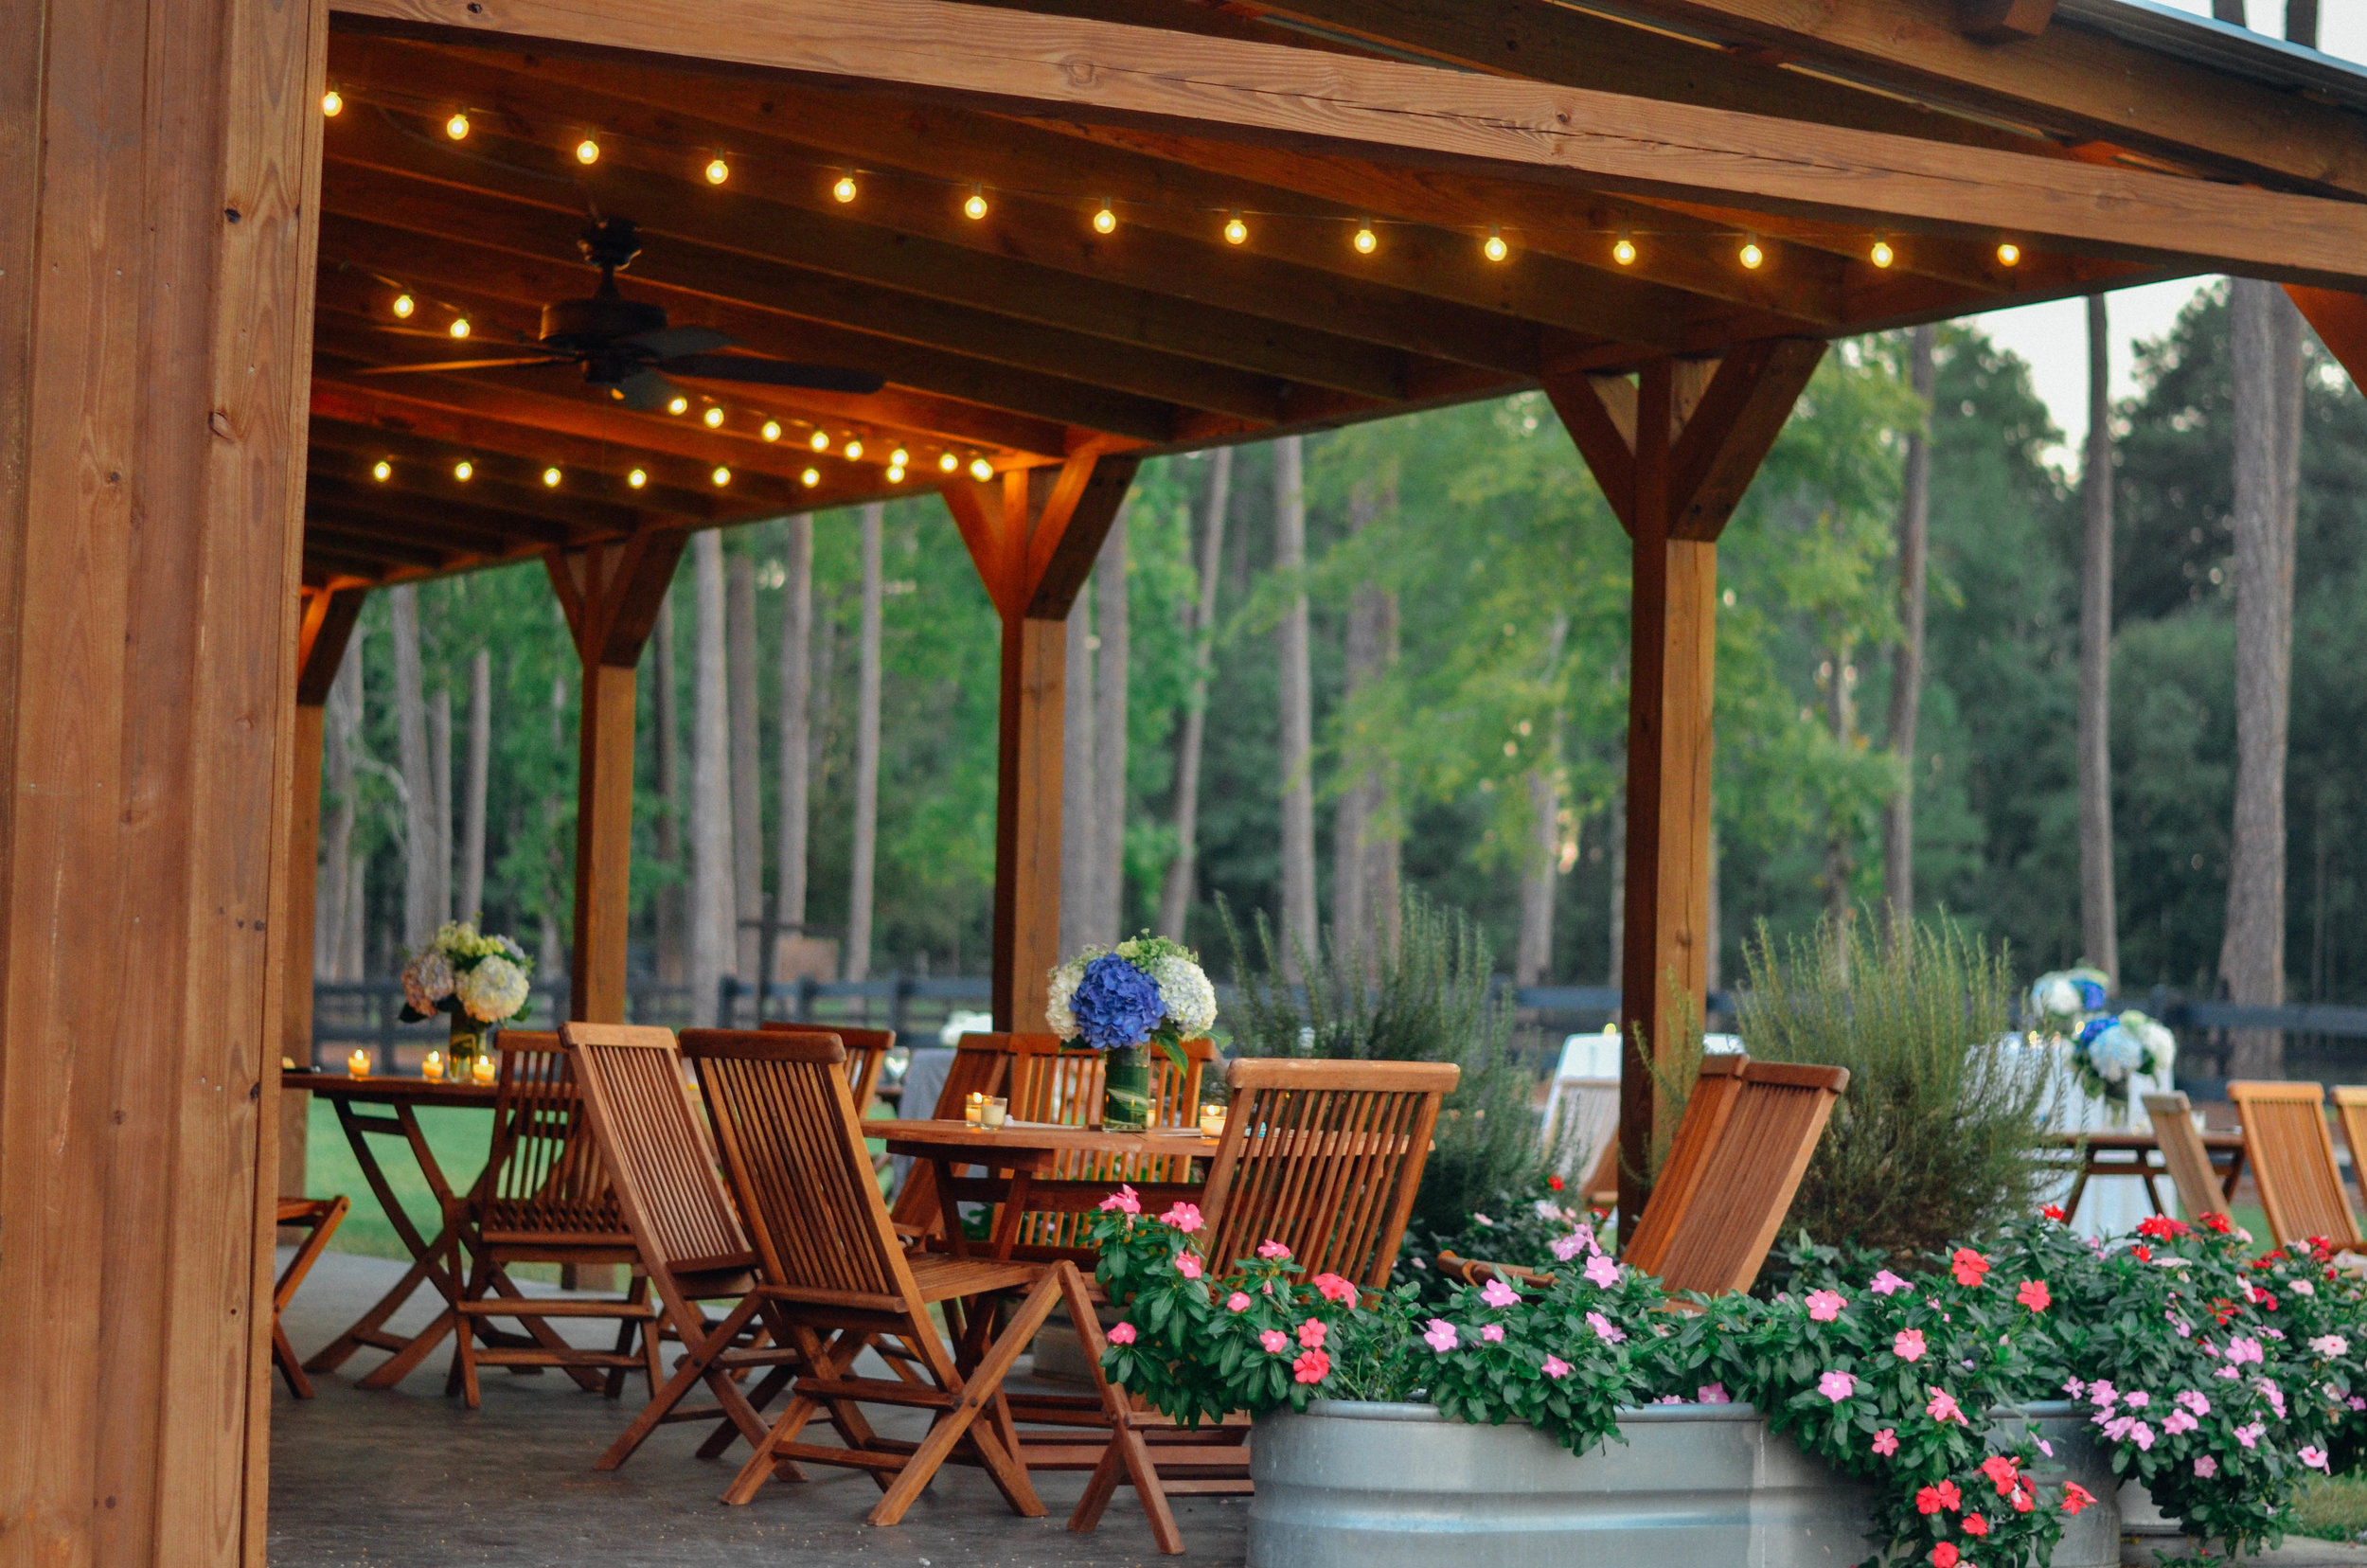 pine-knoll-farms-wedding-greg-boulus-events-augusta-georgia